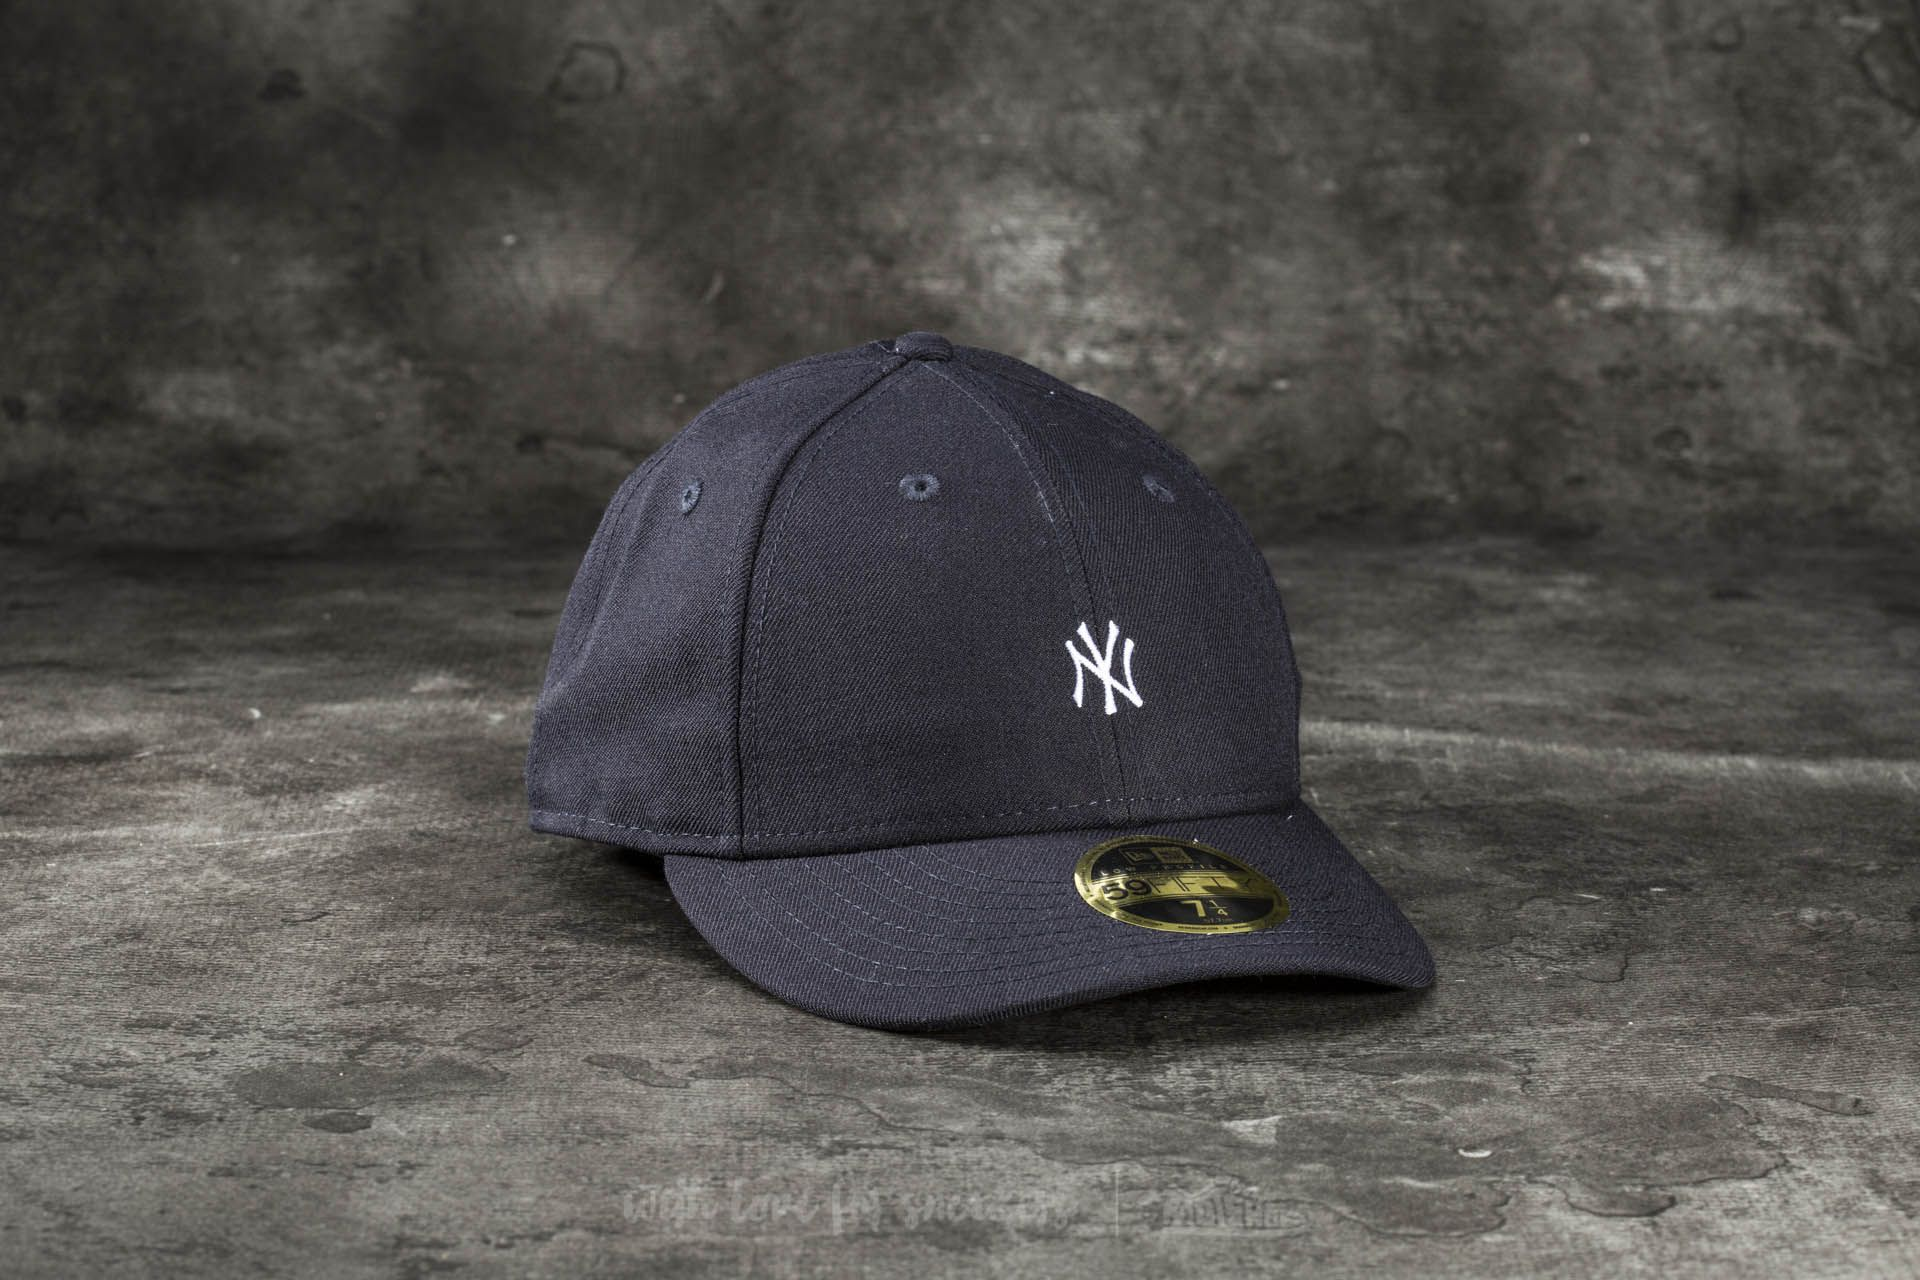 666a8bbf034 New Era 59Fifty Low Profile Mini Logo New York Yankees Cap Navy ...